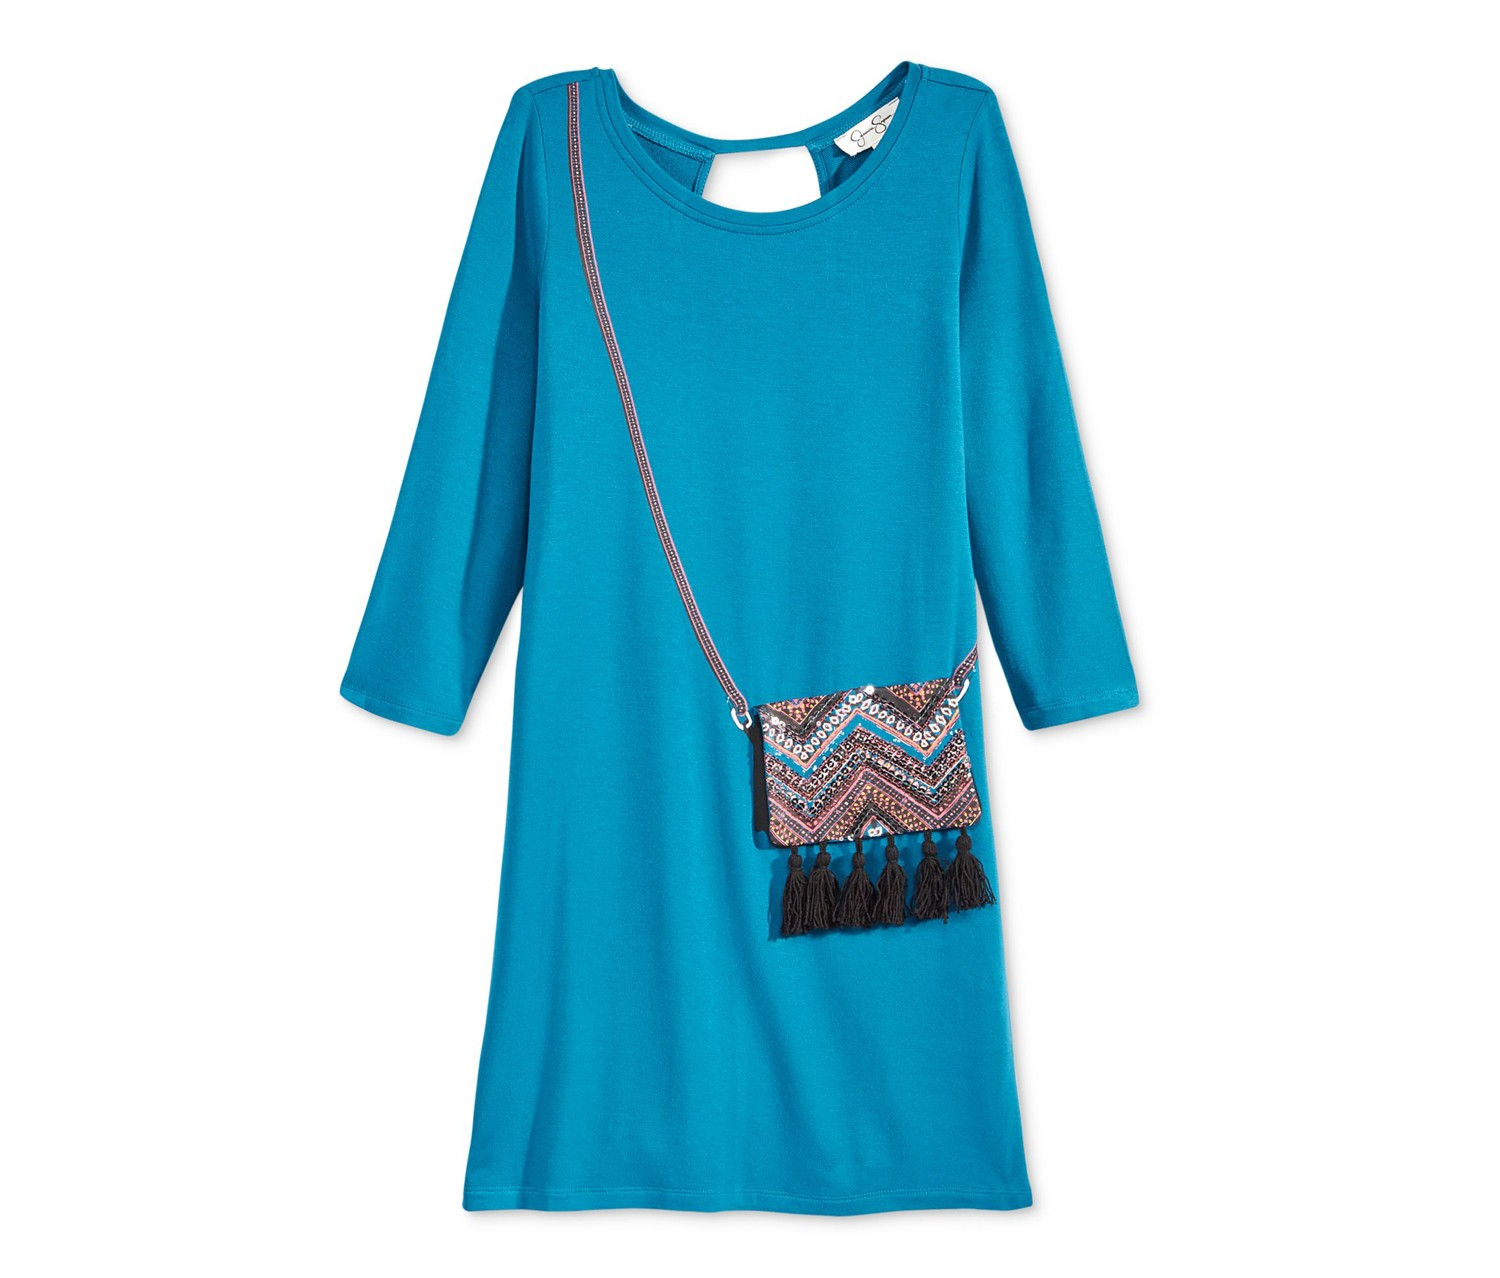 Jessica Simpson Enya Long-Sleeve Purse Dress, Celestial